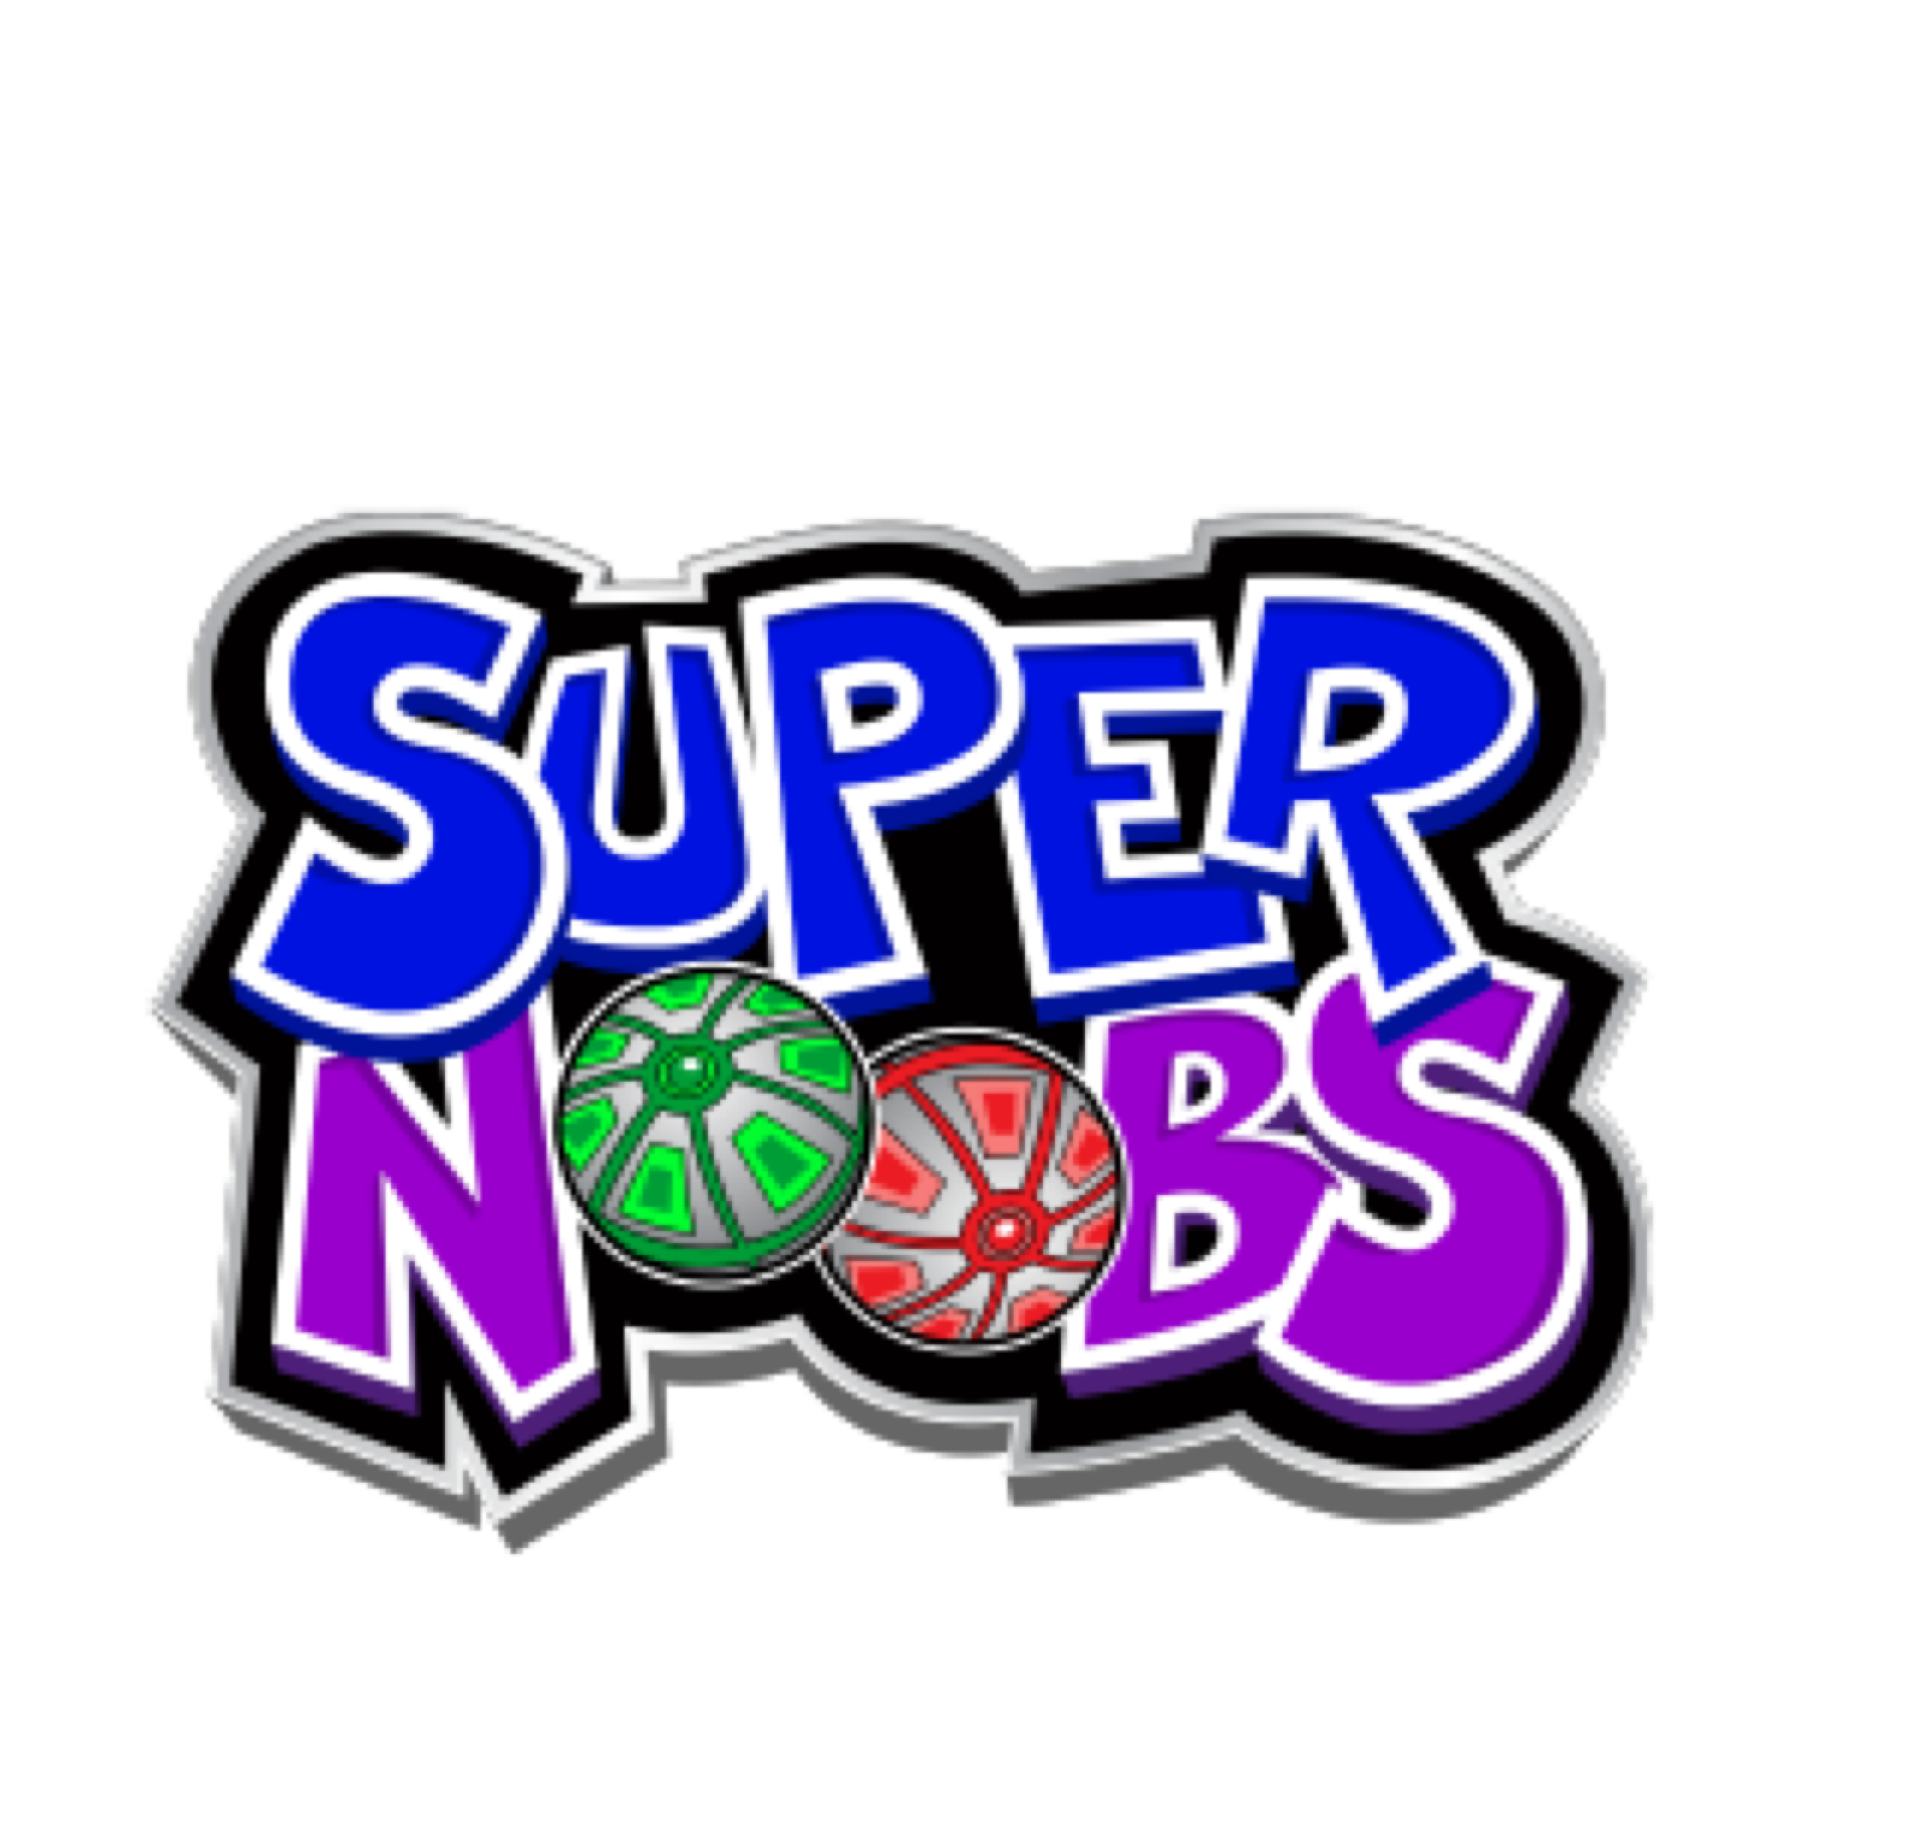 Supernoobs Wallpapers